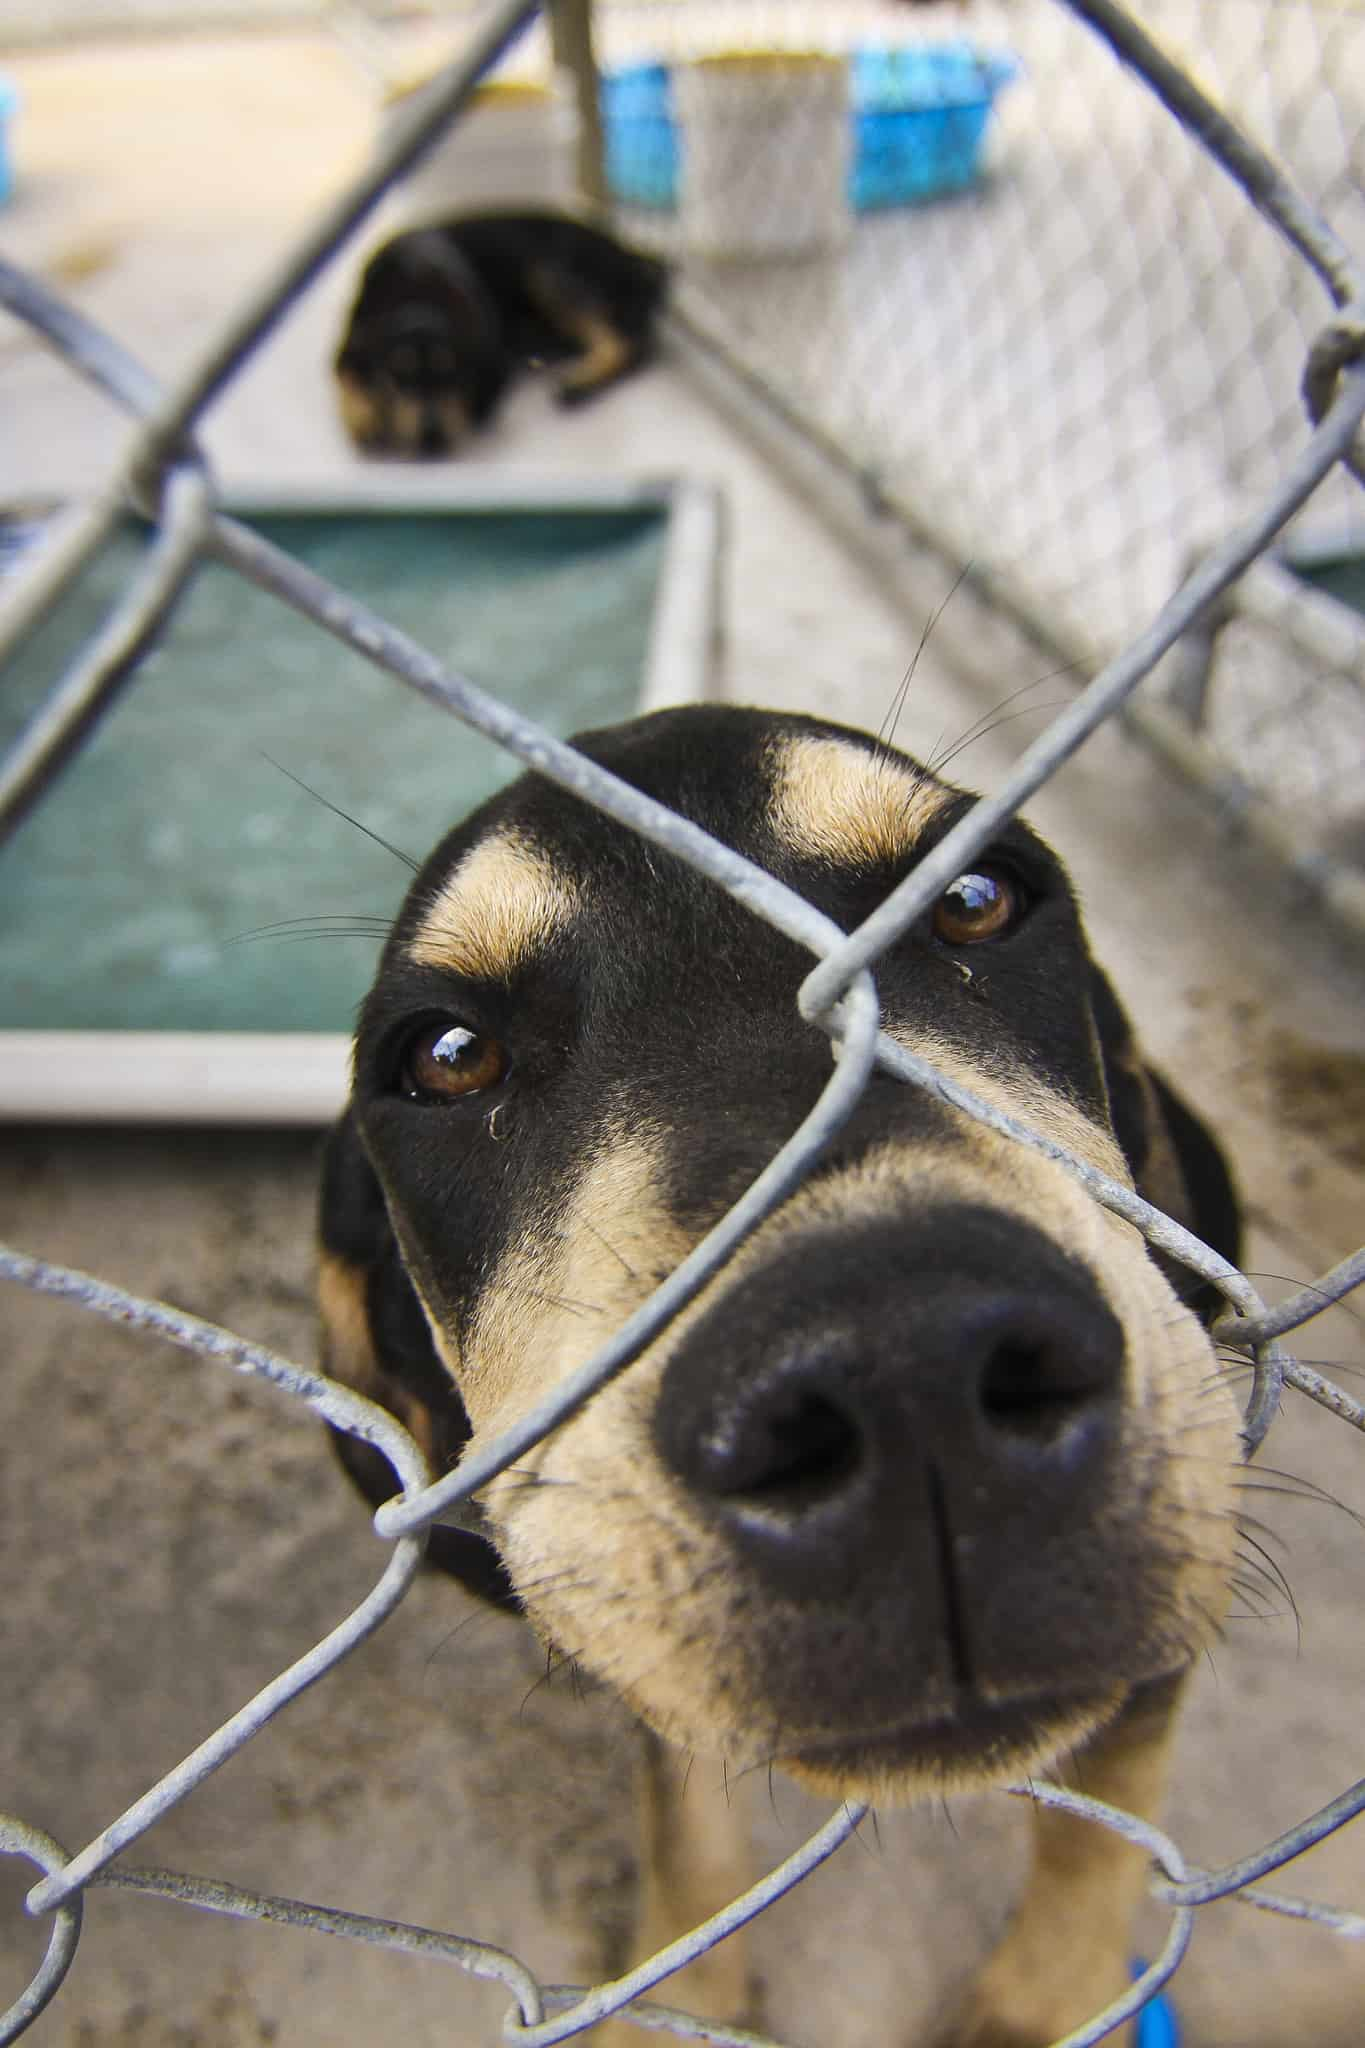 animal pet rescues dogs looking for home finding companion animal homes